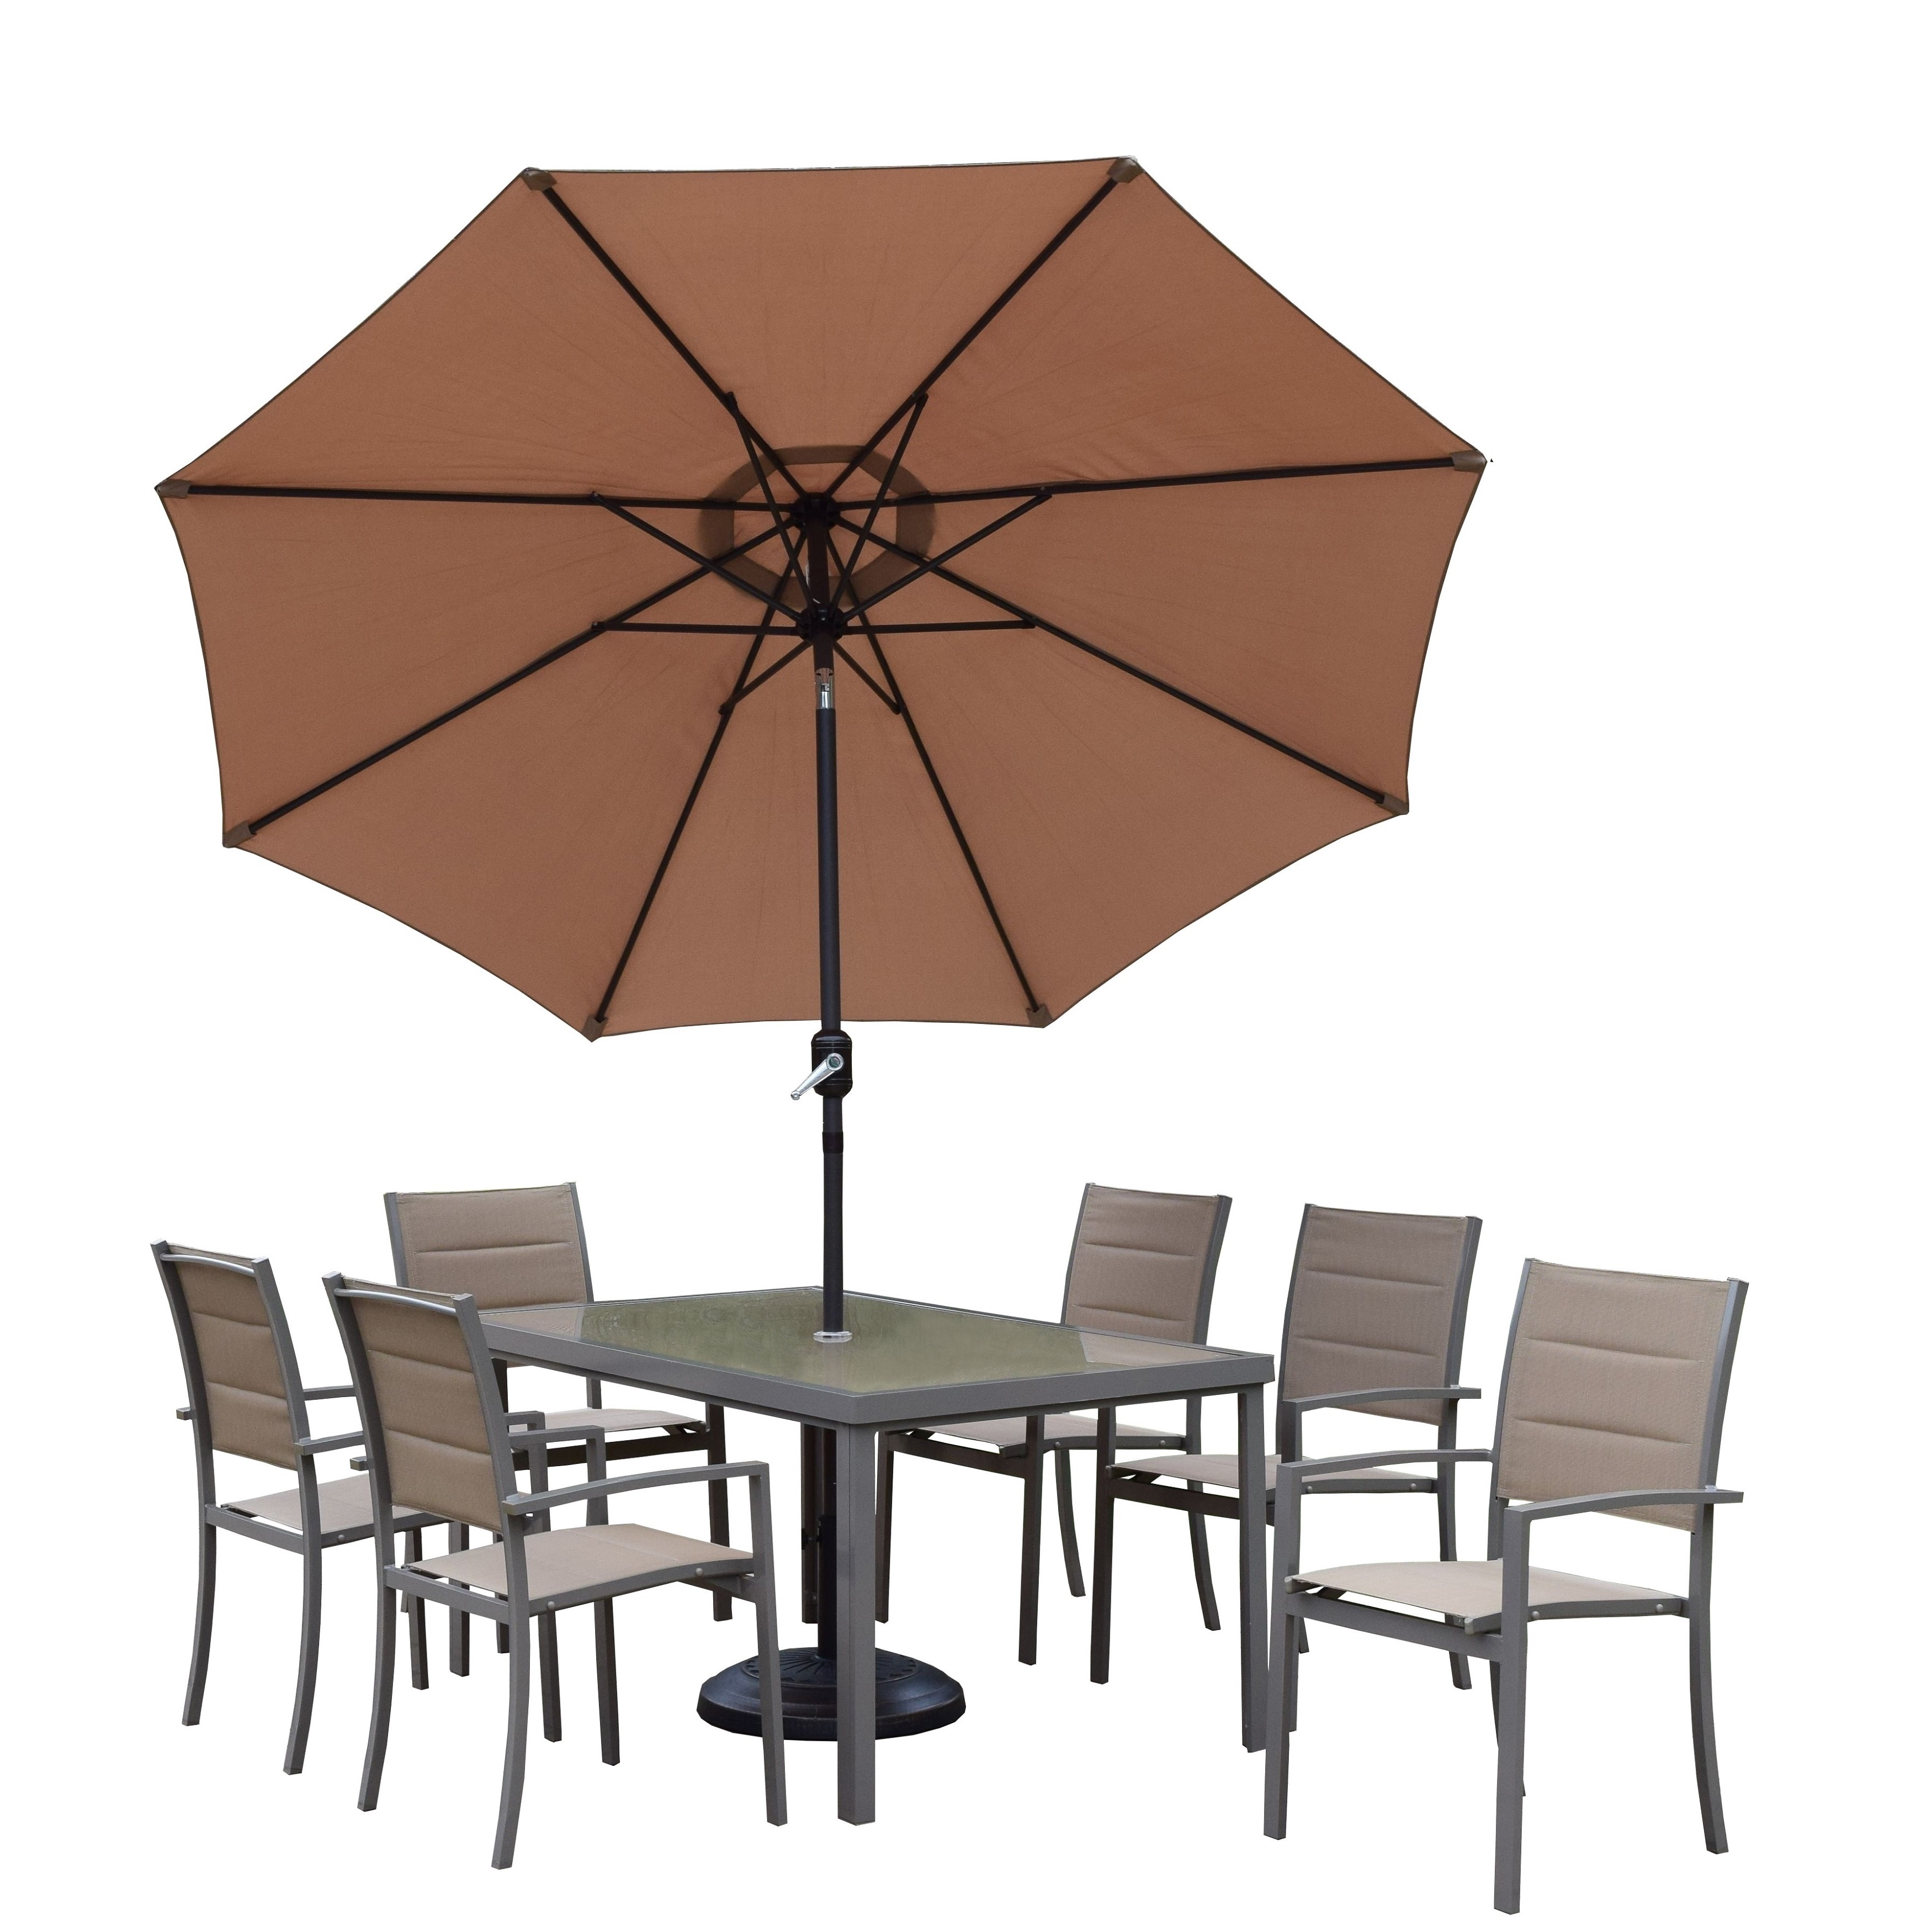 Oakland Living Corporation Padded Sling Set with Glass Table, 6 Chairs, 9 ft Umbrella and Stand